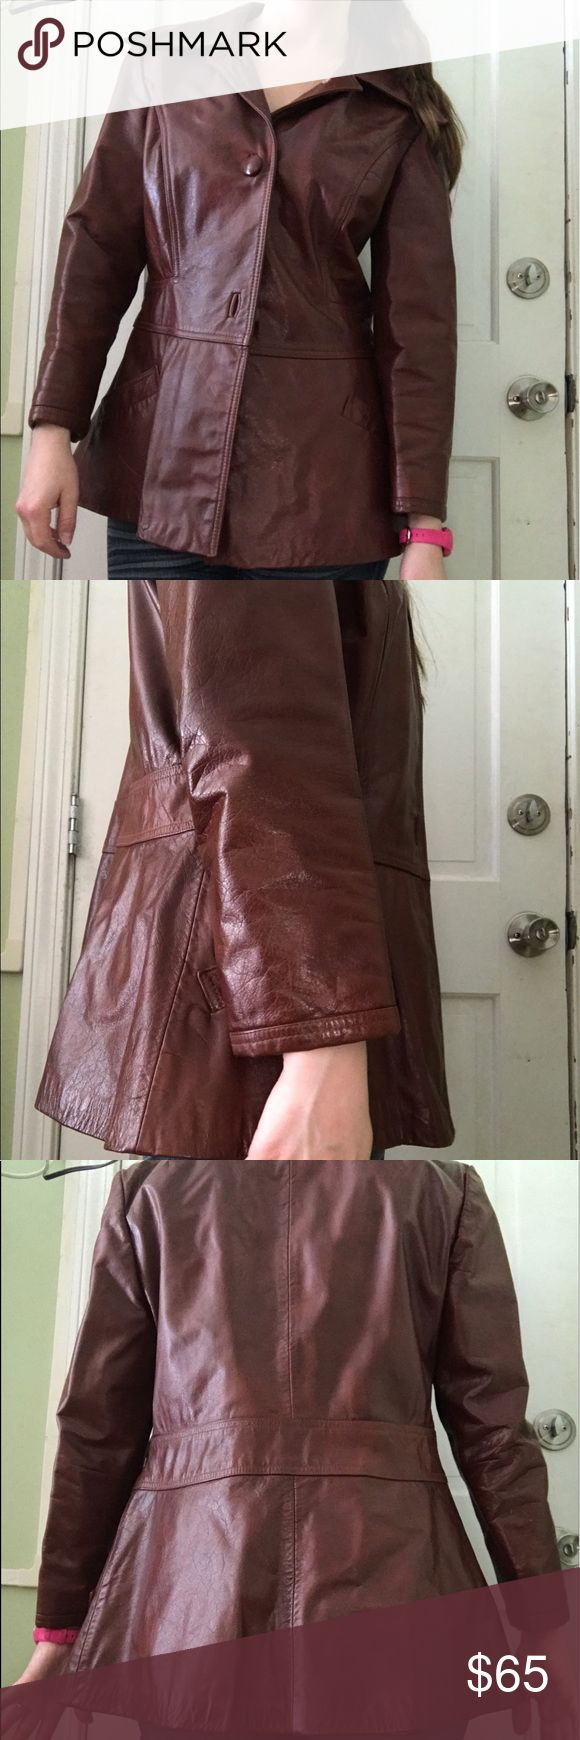 "Vintage ILGWU Genuine Leather Jacket Beautiful chocolate brown Ms. Courtney ILGWU (International Ladies Garments Workers Union) Genuine Leather Jacket. Great condition. Leather broken in. Minor scratch to the right sleeve and shoulder. It's a 14 but the woman was petite and I'm 5'5"", and a size 4-6 and it fits perfect but short on my arms. **from estate sale, has been in storage. Dry cleaning recommended** Jackets & Coats"